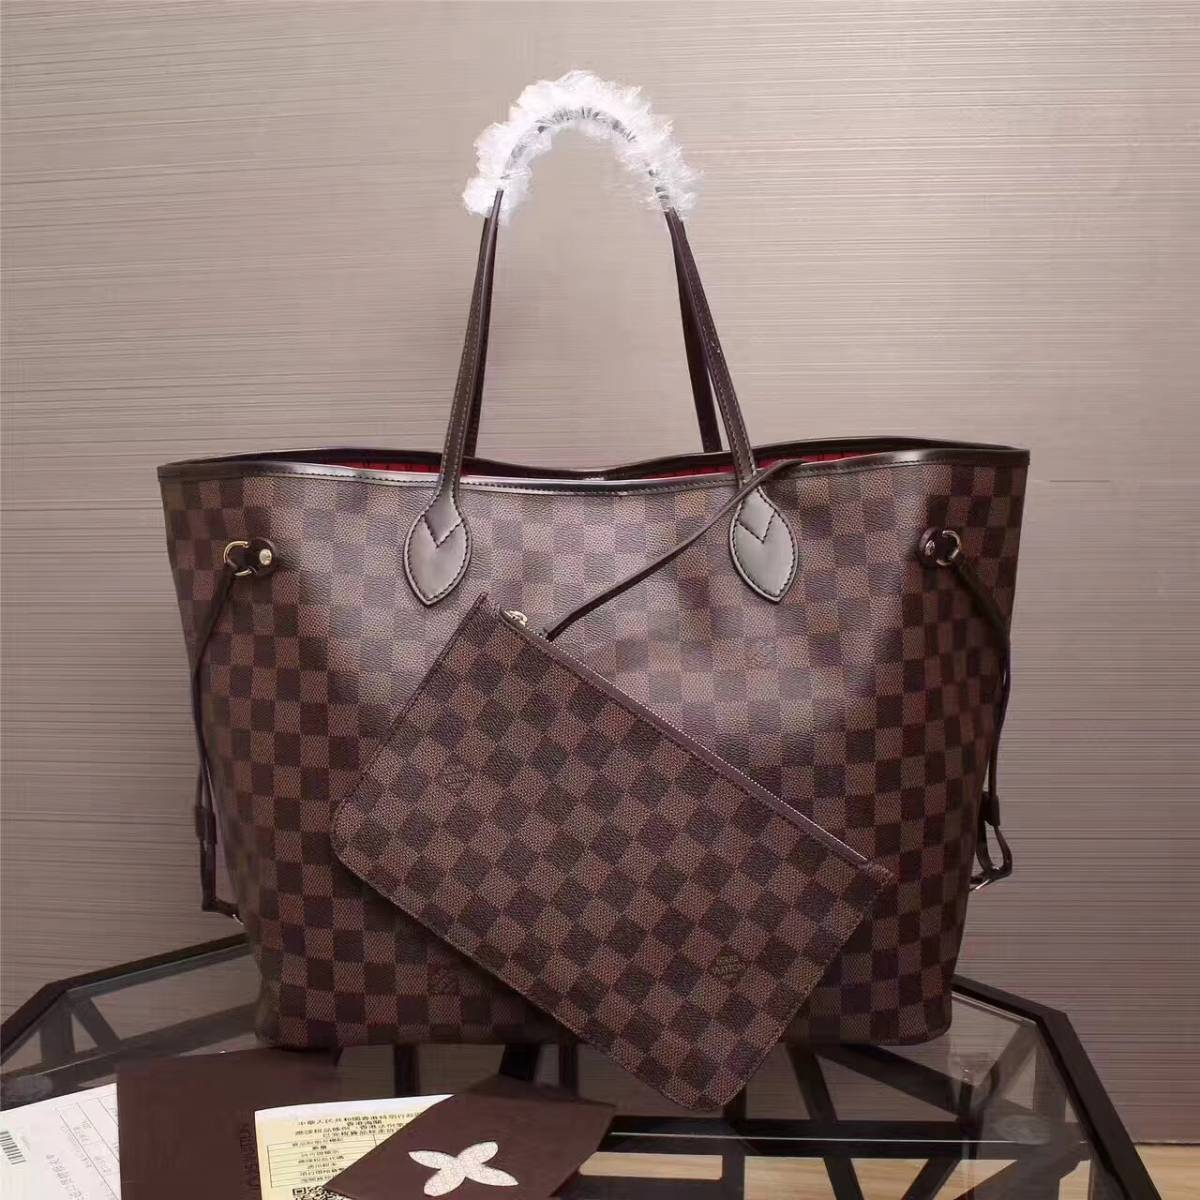 LOUIS VUITTON ルイヴィトントートバッグ N41357 レディース用 モノグラム